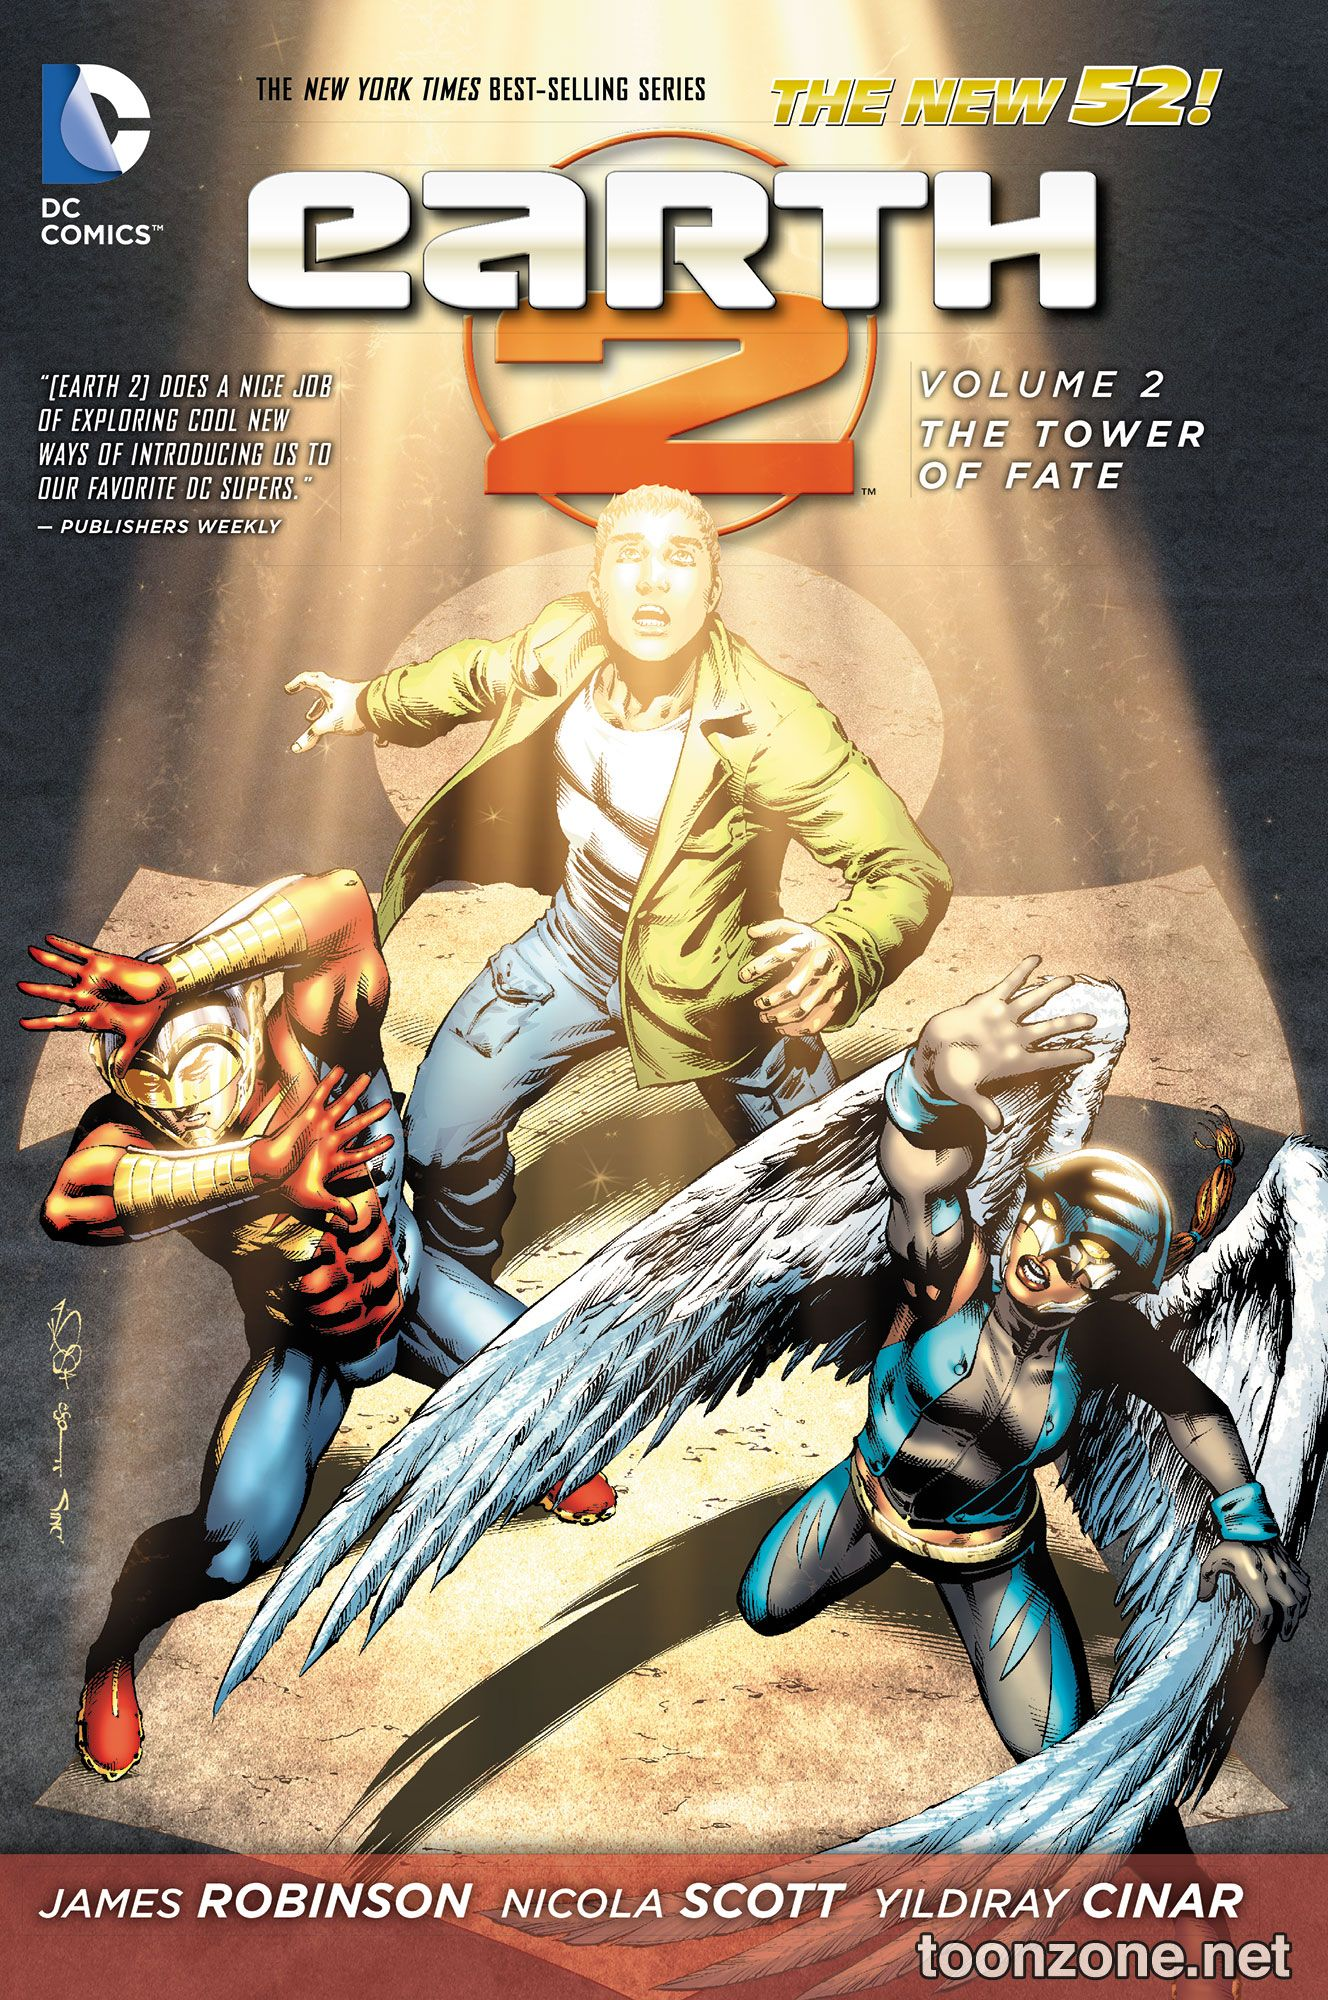 EARTH 2 VOL. 2: THE TOWER OF FATE TP